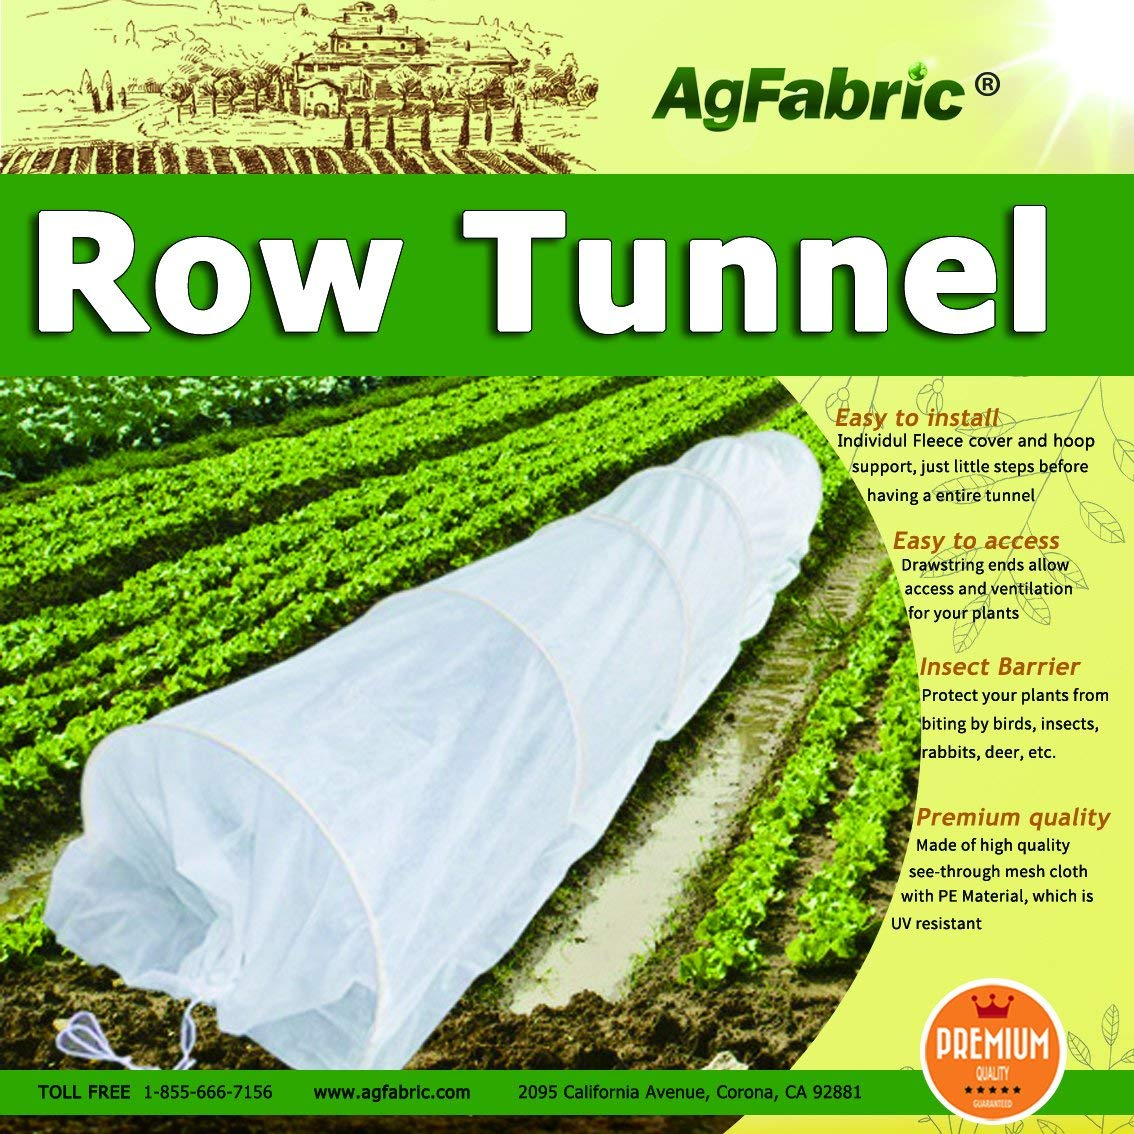 Agfabric Hoop House Kit, Mini Greenhouse Grow Tunnel, Floating Row Cover with Support Hoops, Plant Cover&Frost Blanket for Seed Germination & Frost Protection(20ft Long)